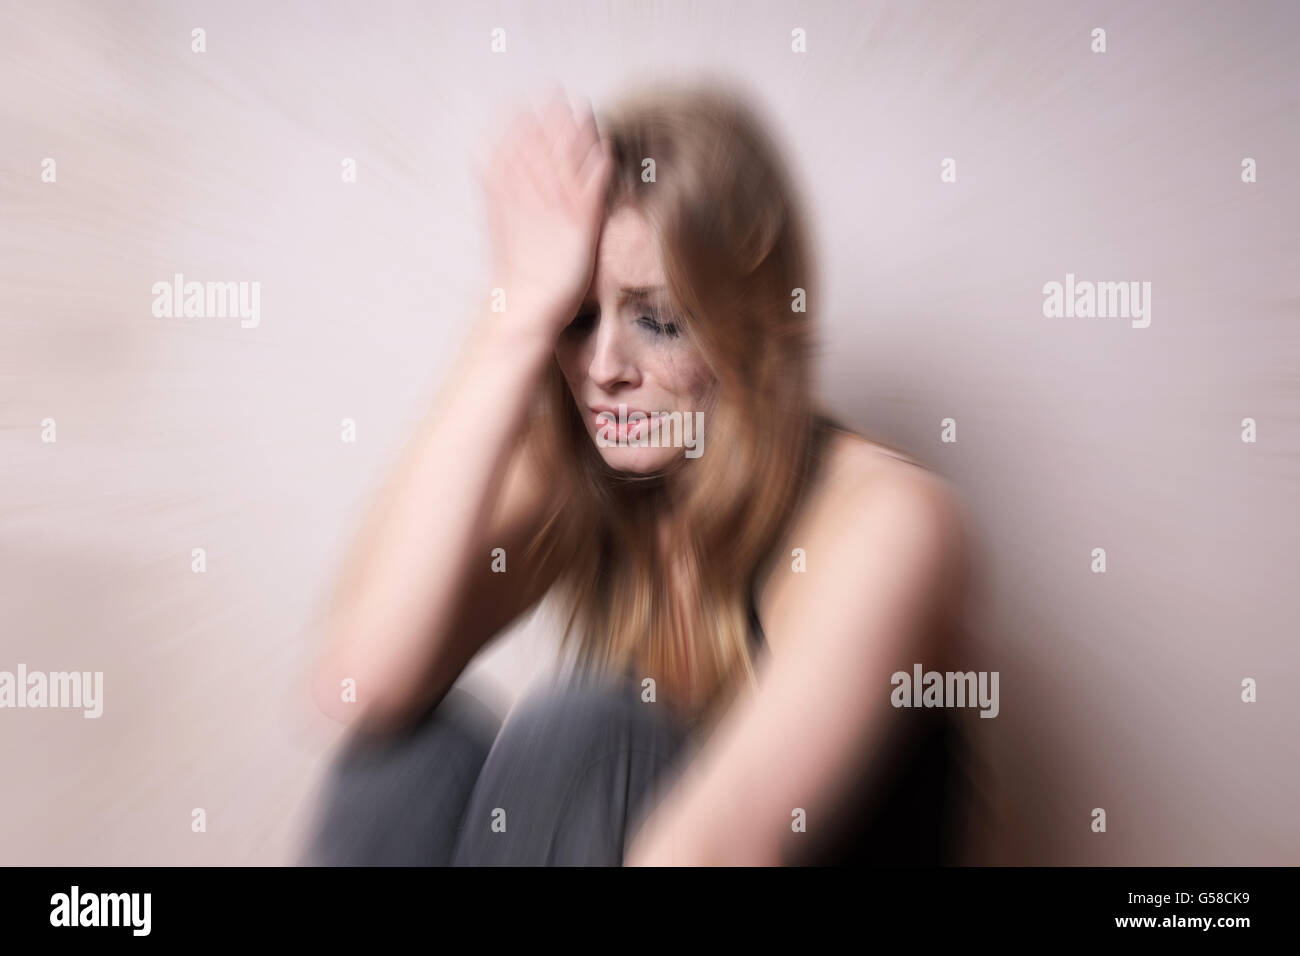 sad depressed young woman with tear-stained face - Stock Image